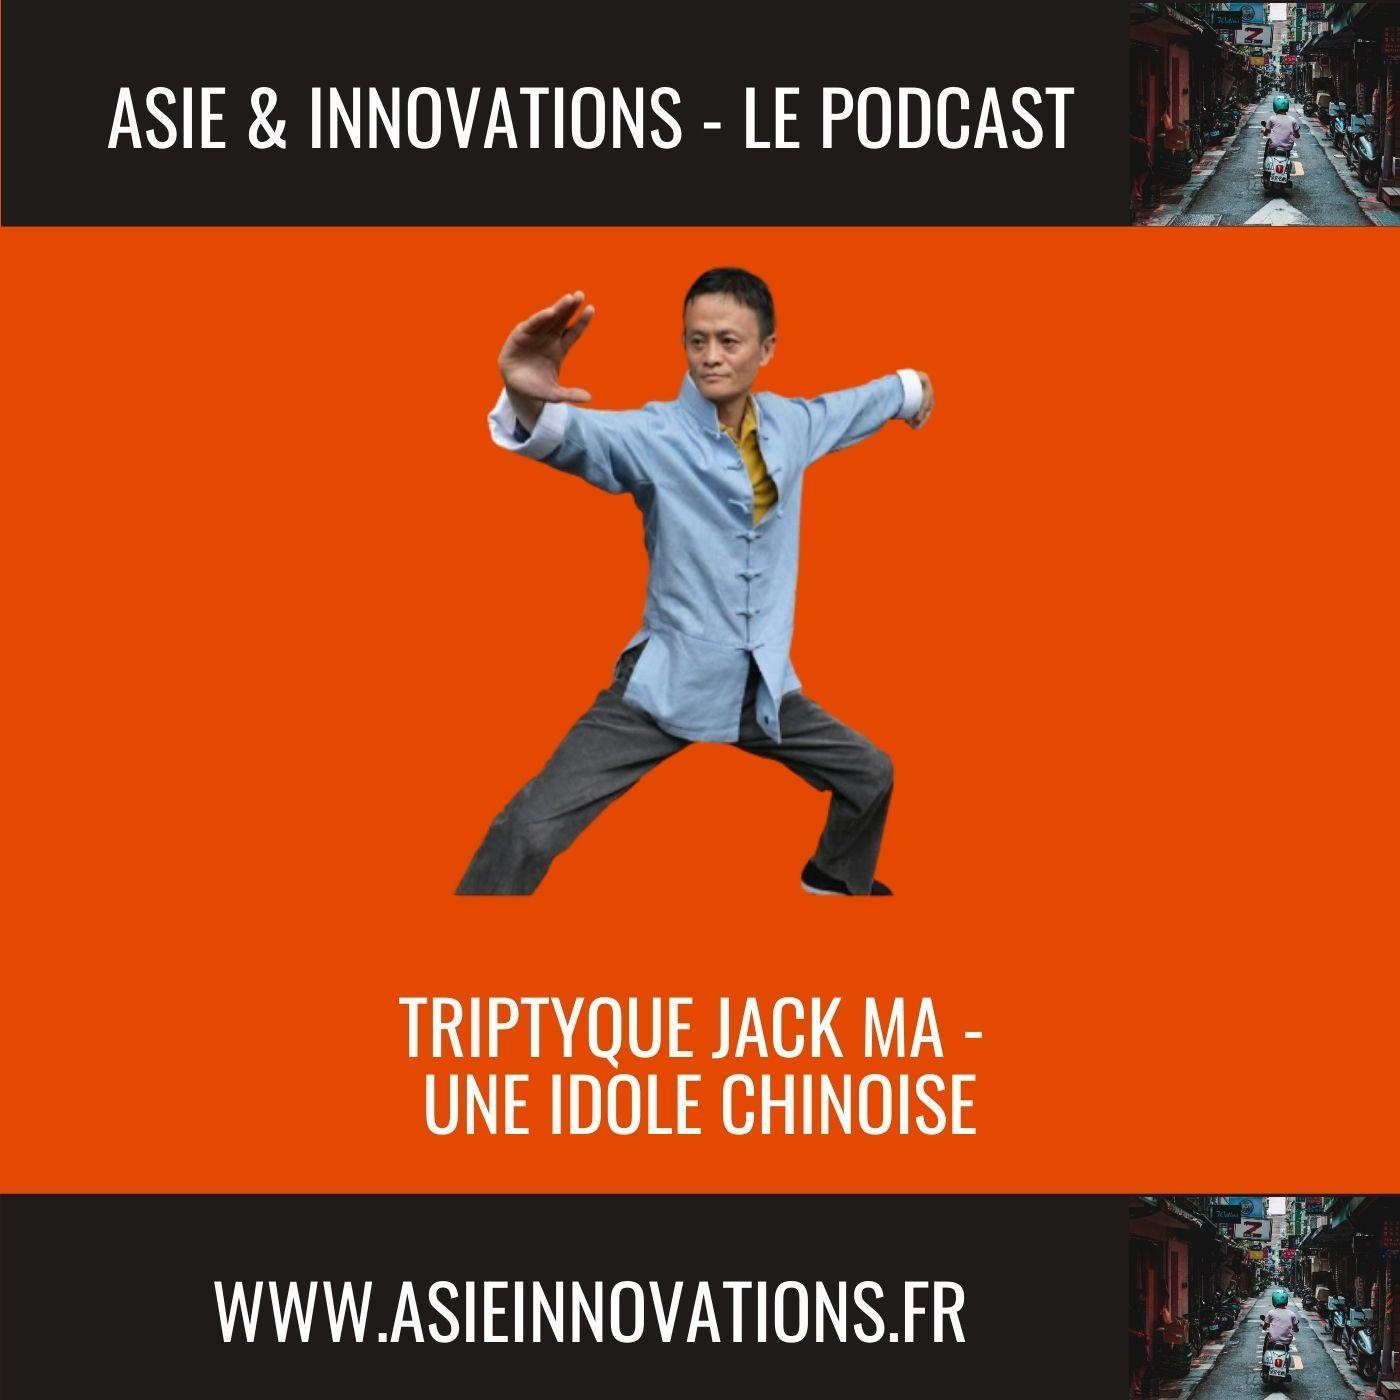 Triptyque Jack Ma - Une idole chinoise [repost]